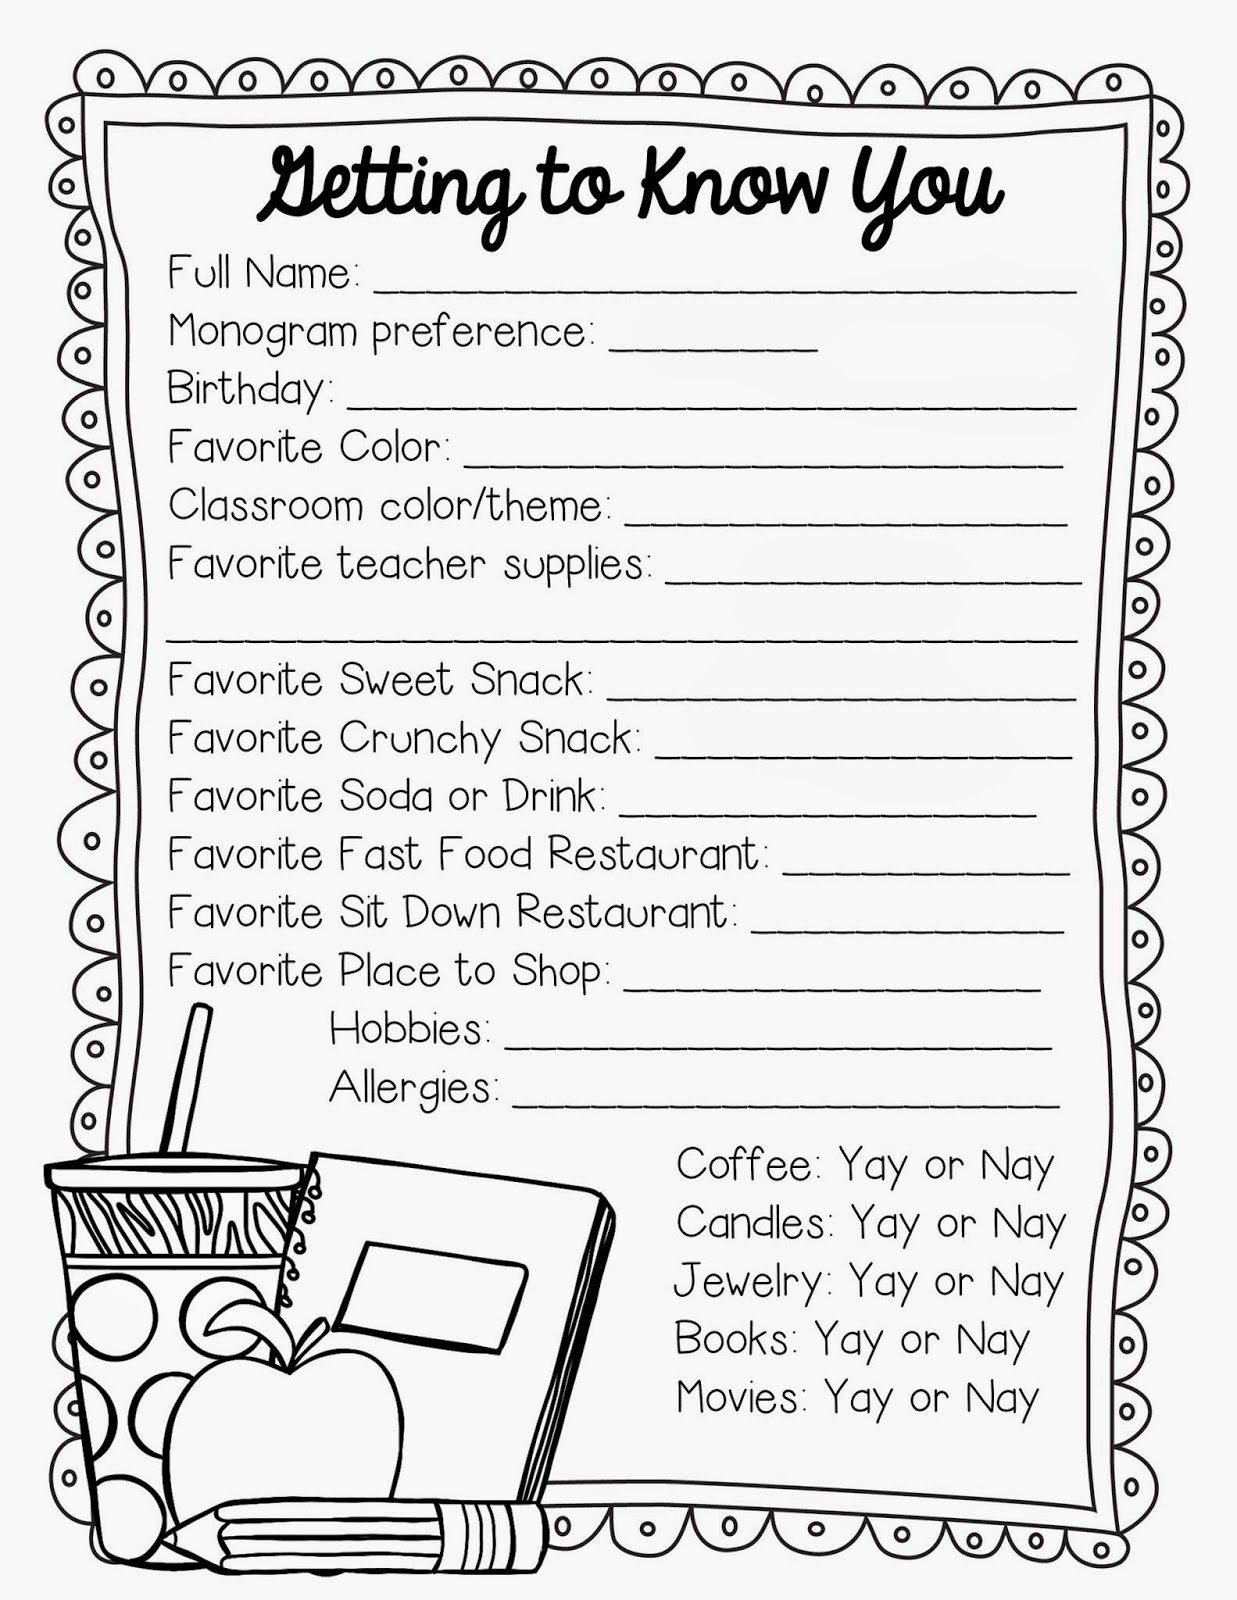 worksheet Get To Know You Worksheet 2nd grade snickerdoodles getting to know the teacher freebie great for gift